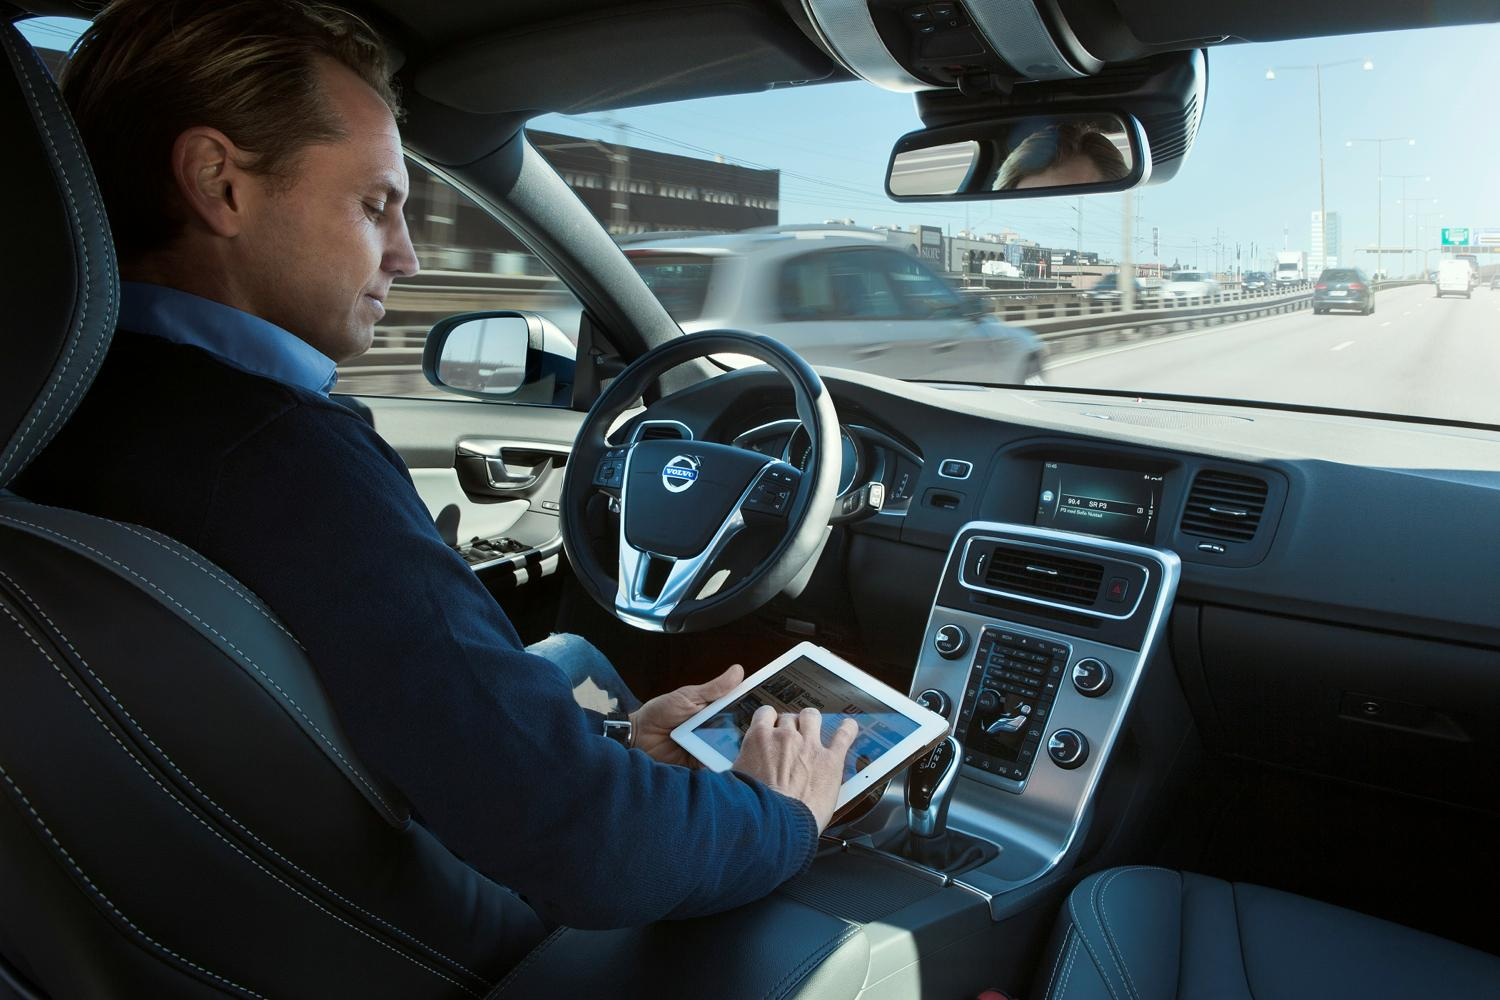 Image result for images of self driving tesla